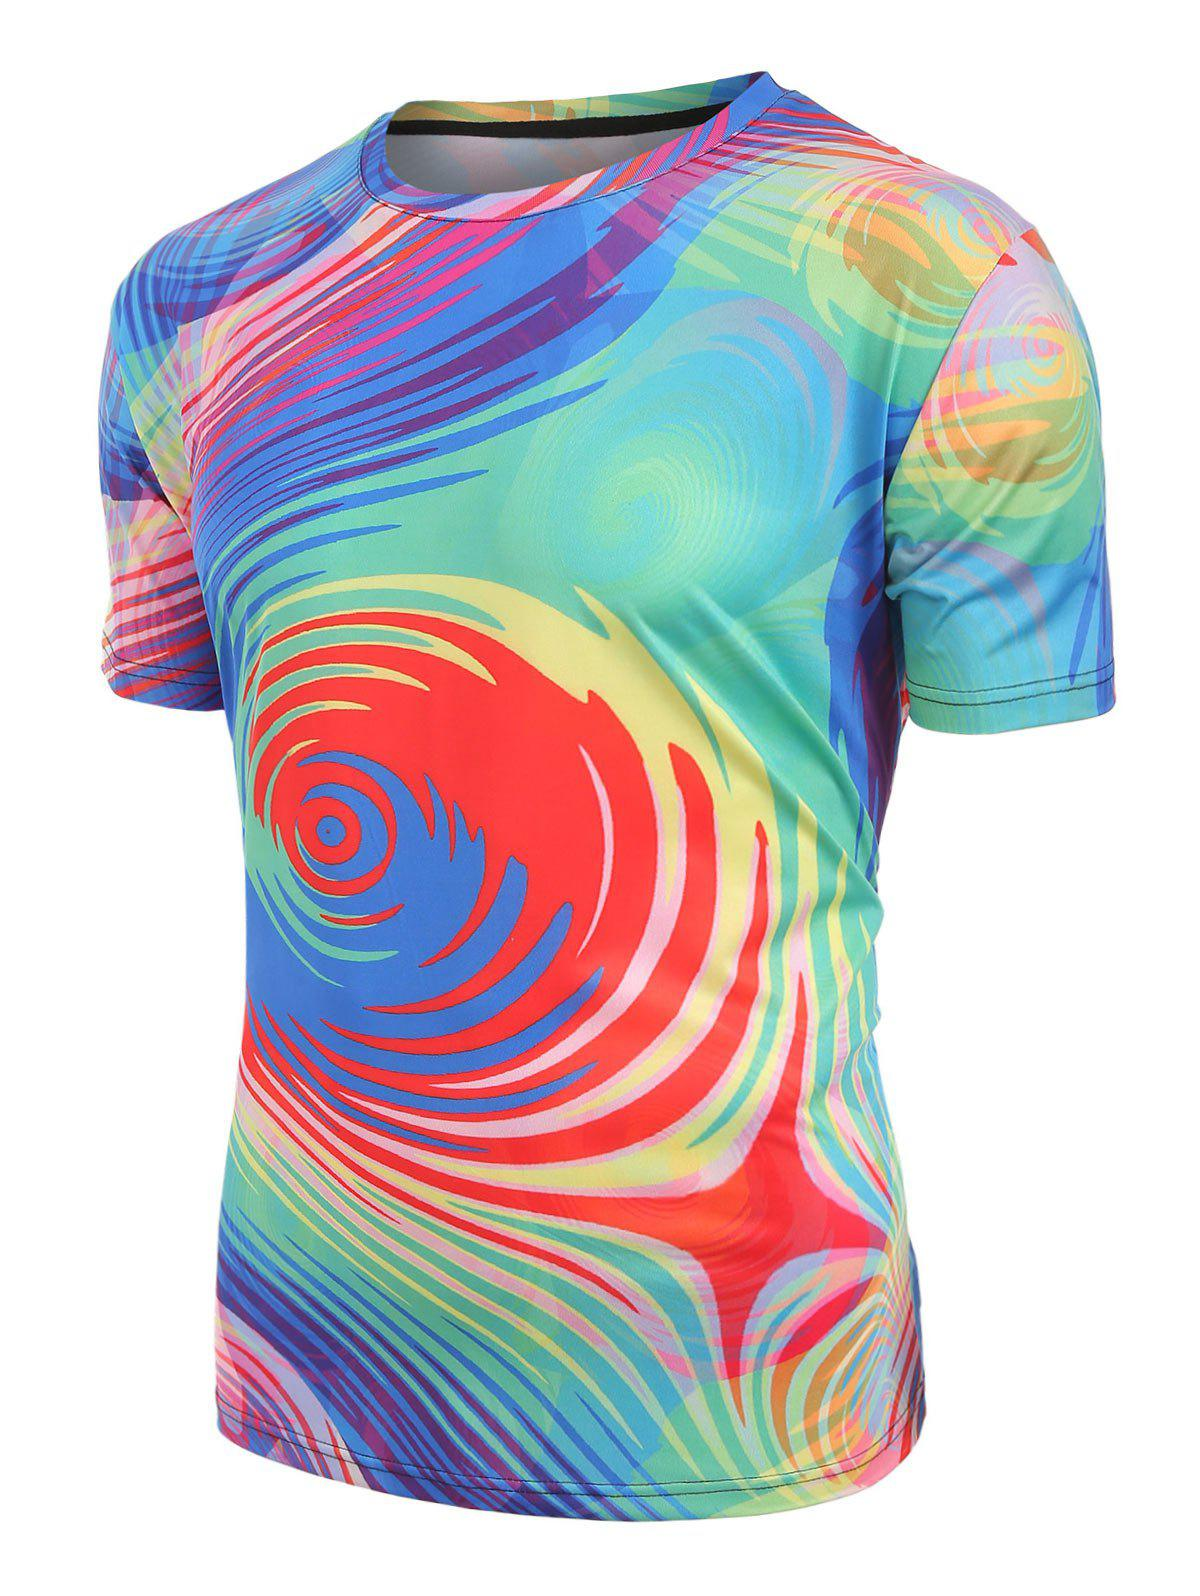 Best Short Sleeves Colorful Swirl Print Casual T-shirt